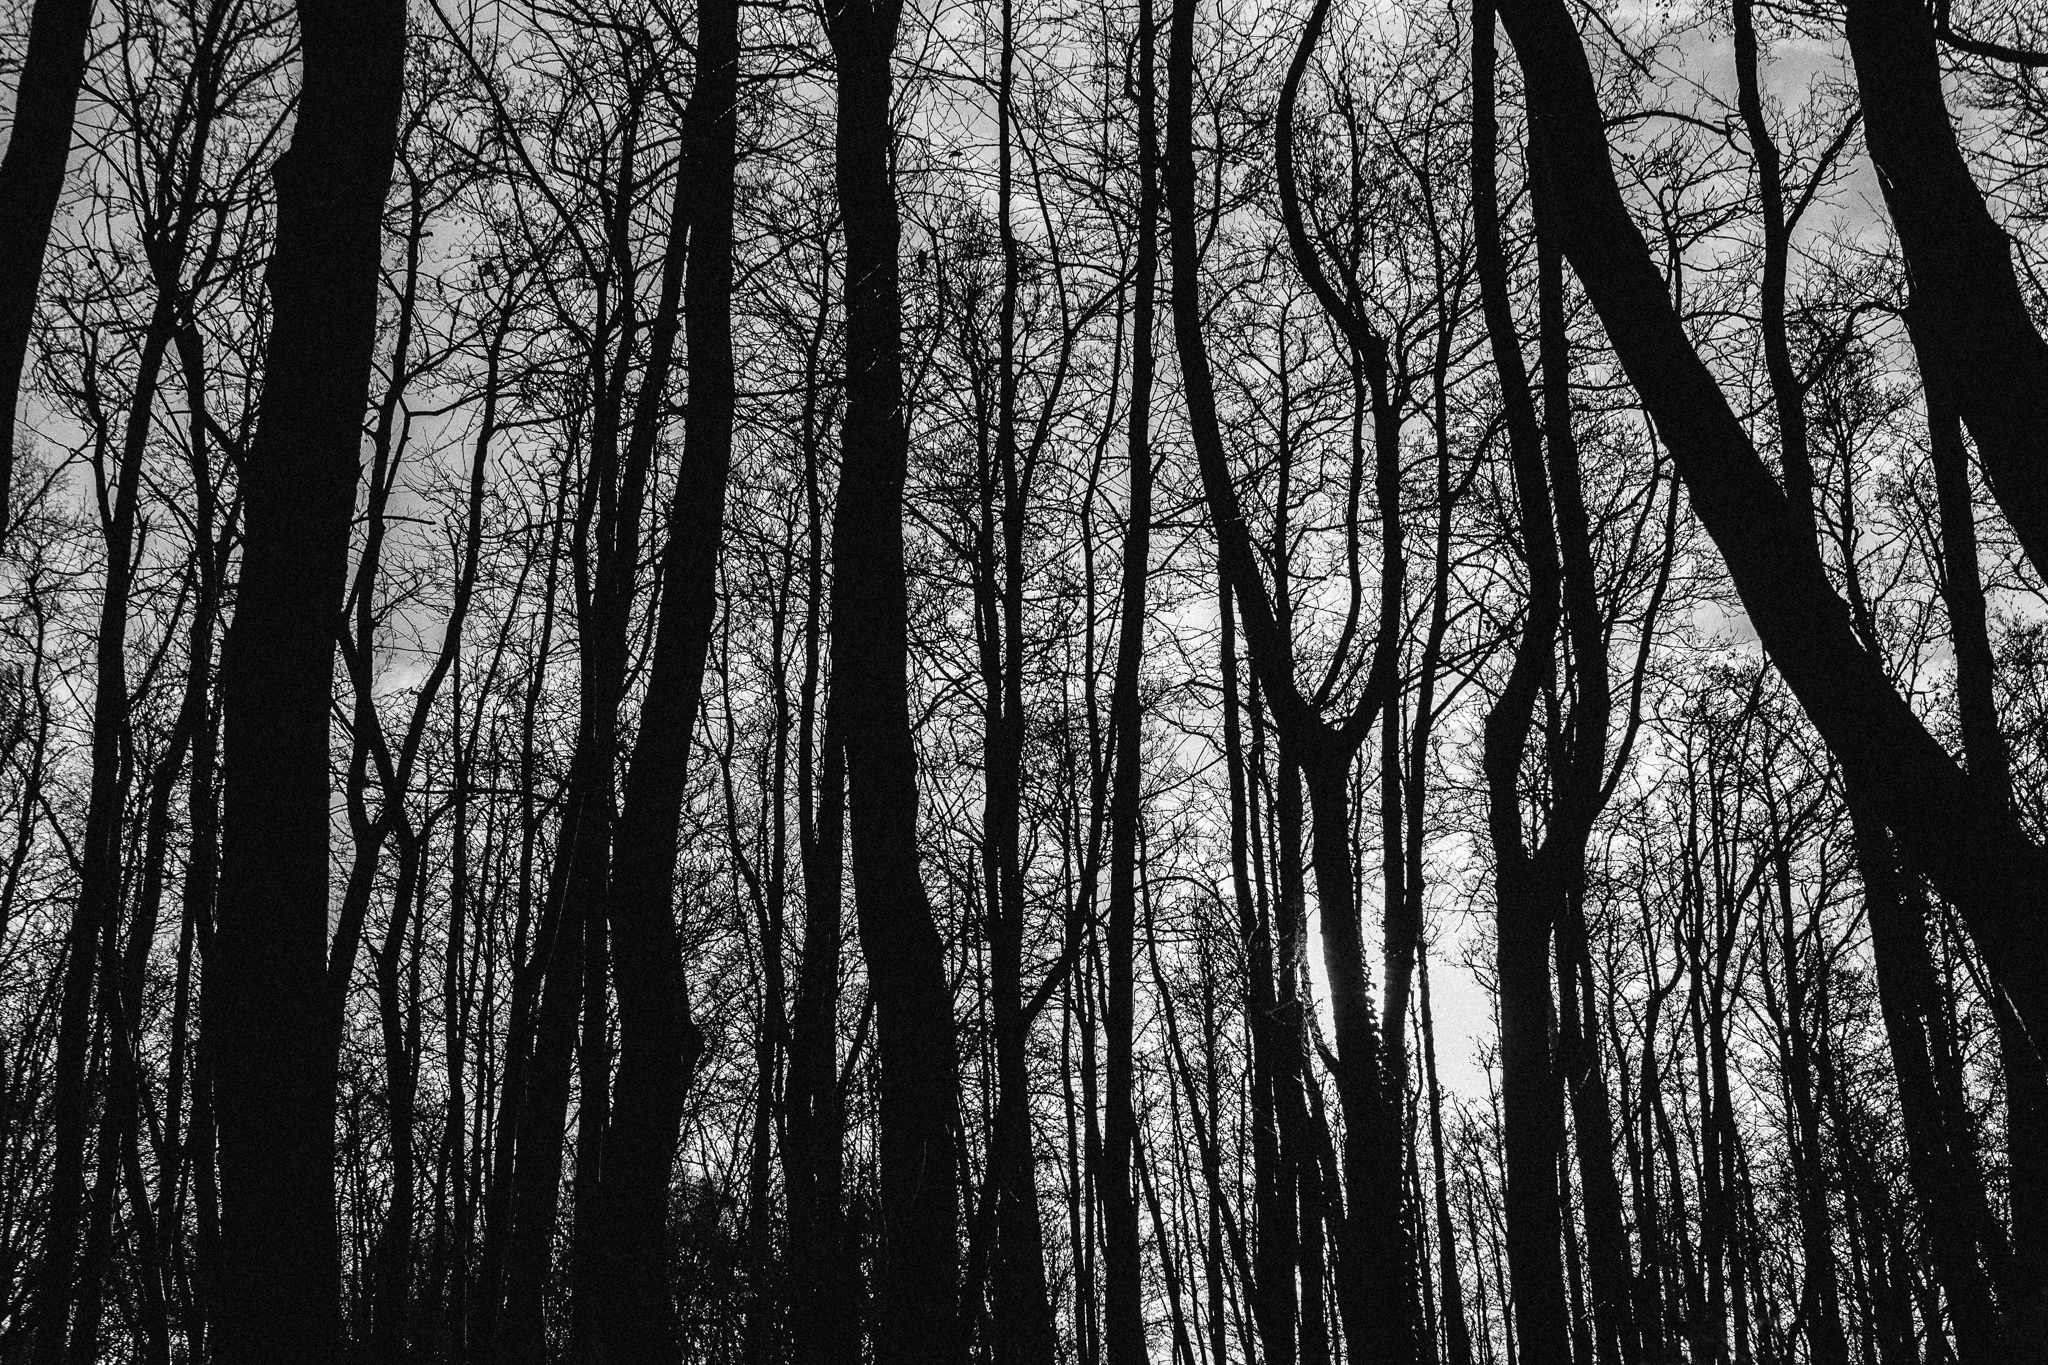 blood-vessel-trees-bw (1 of 1).jpg